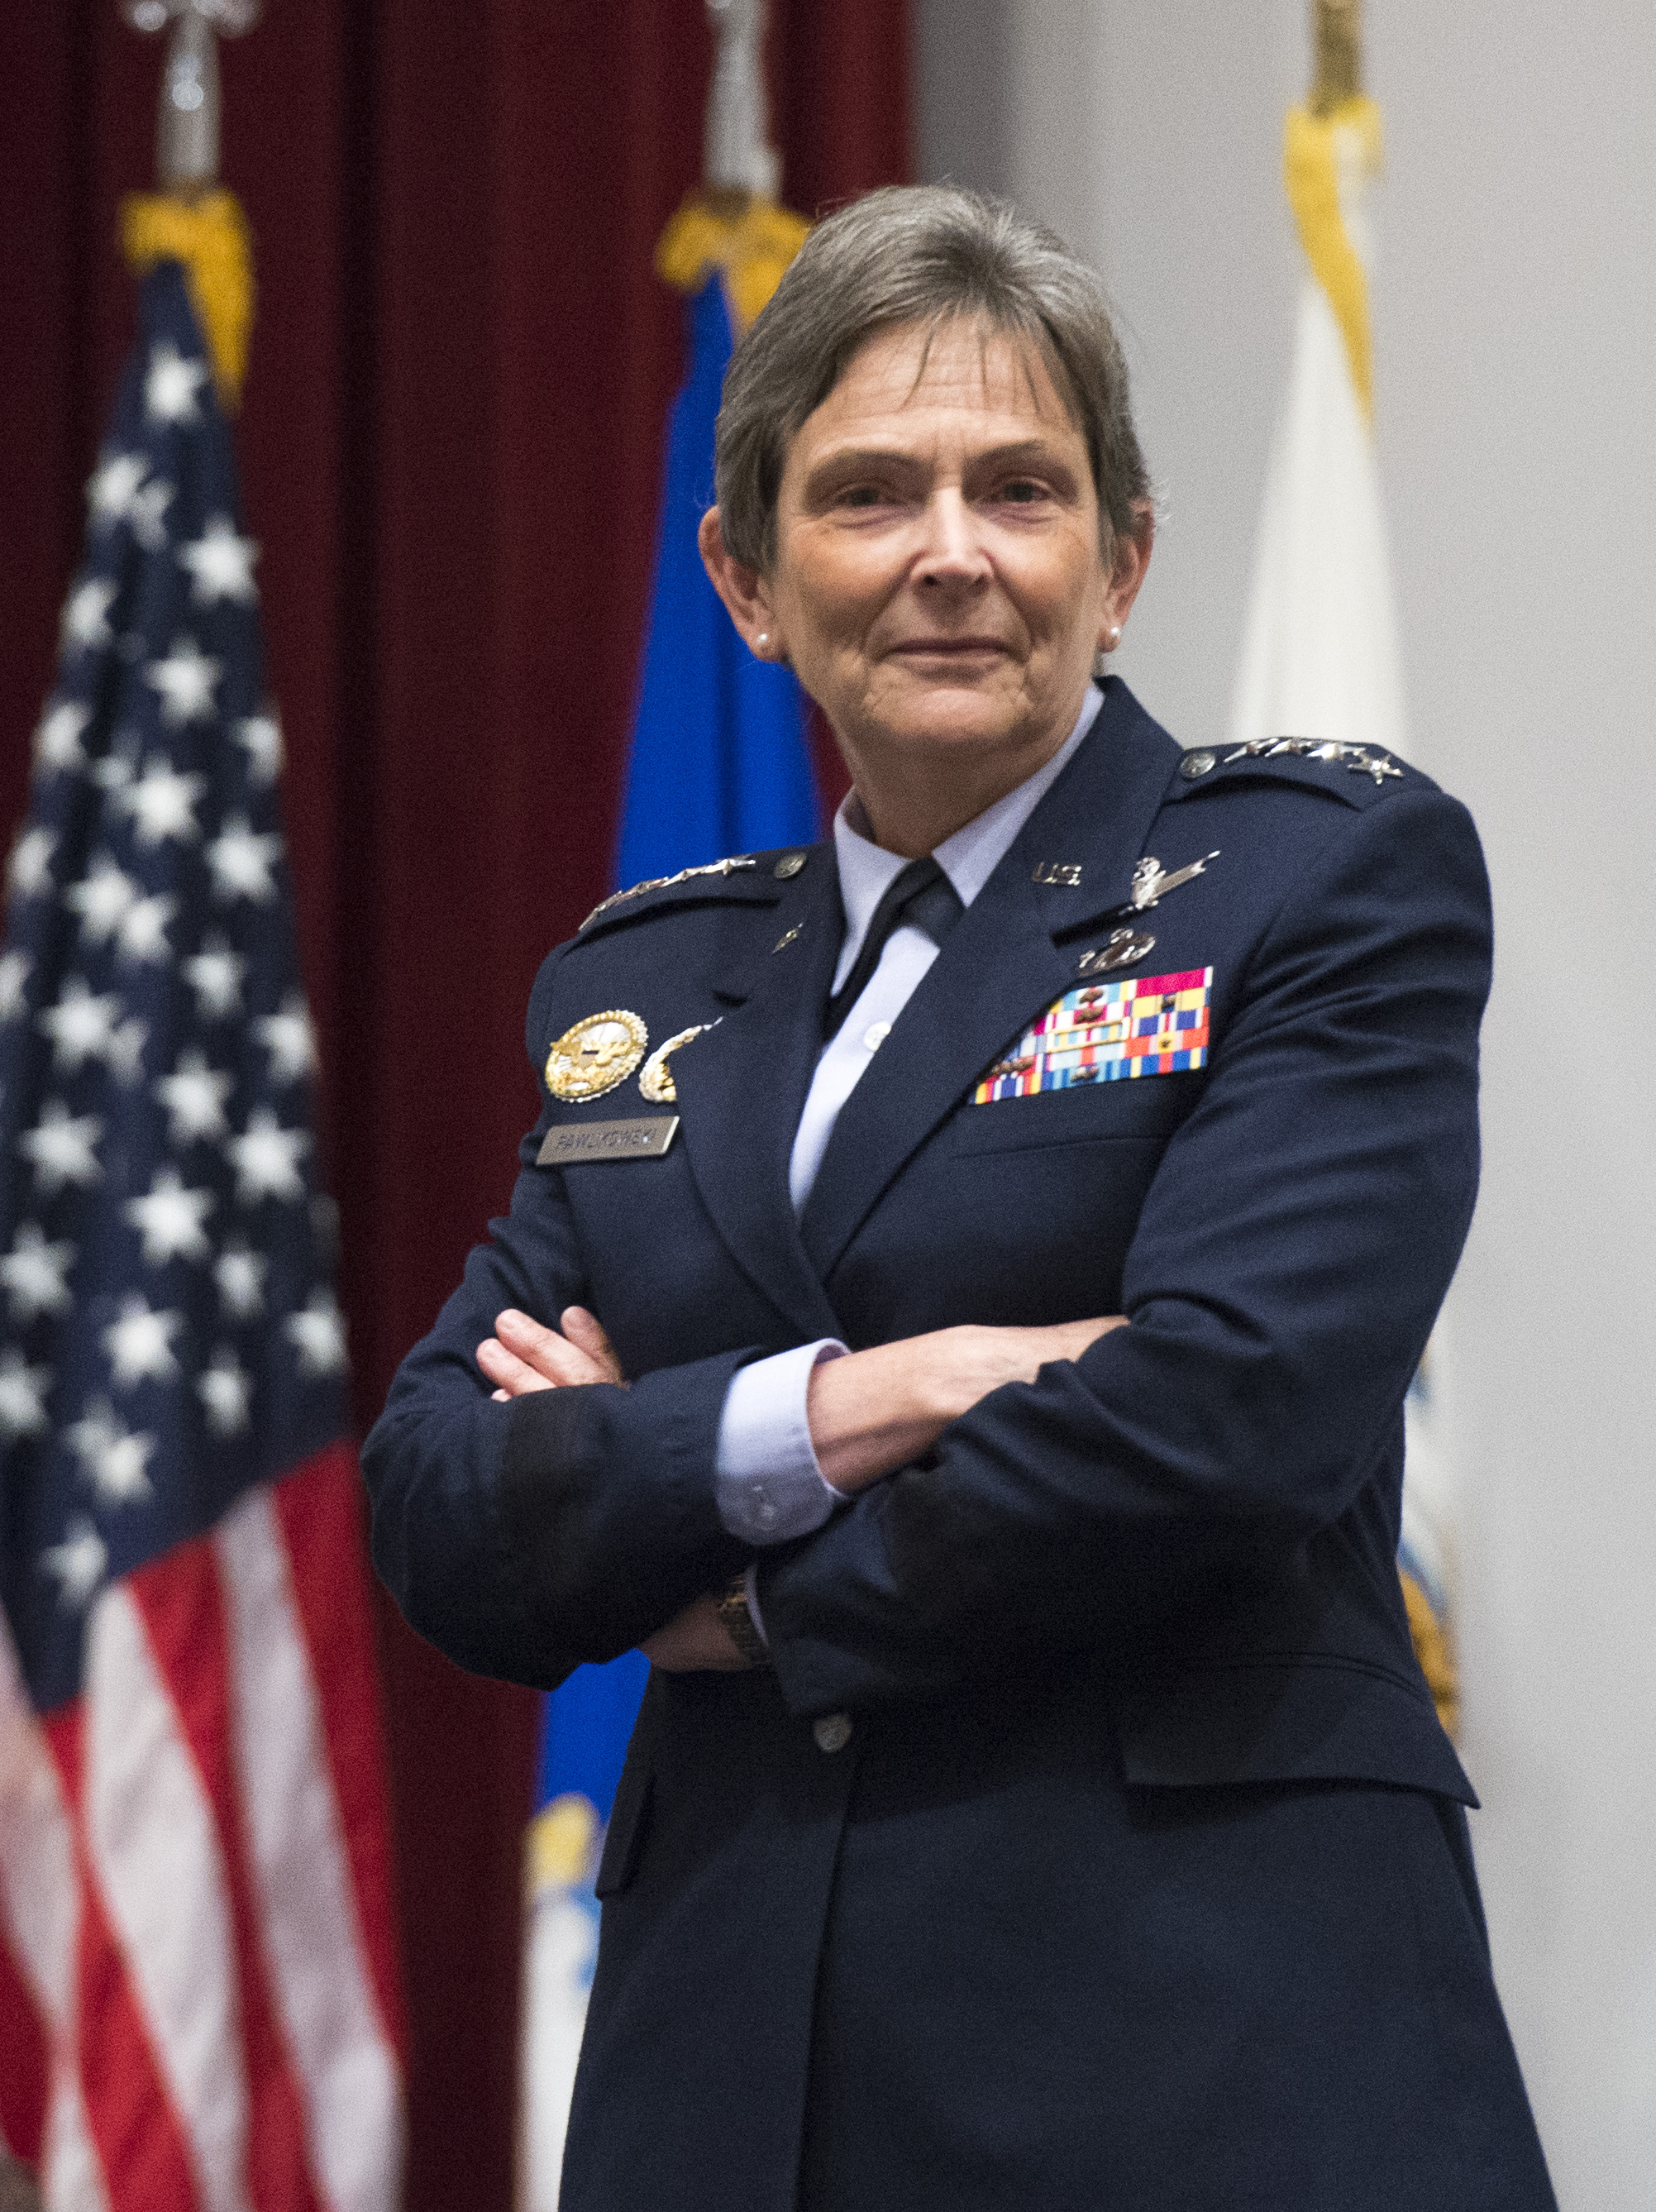 reputable site dcc06 7e4bc Pawlikowski tenure marked by effectiveness, Air Force ...